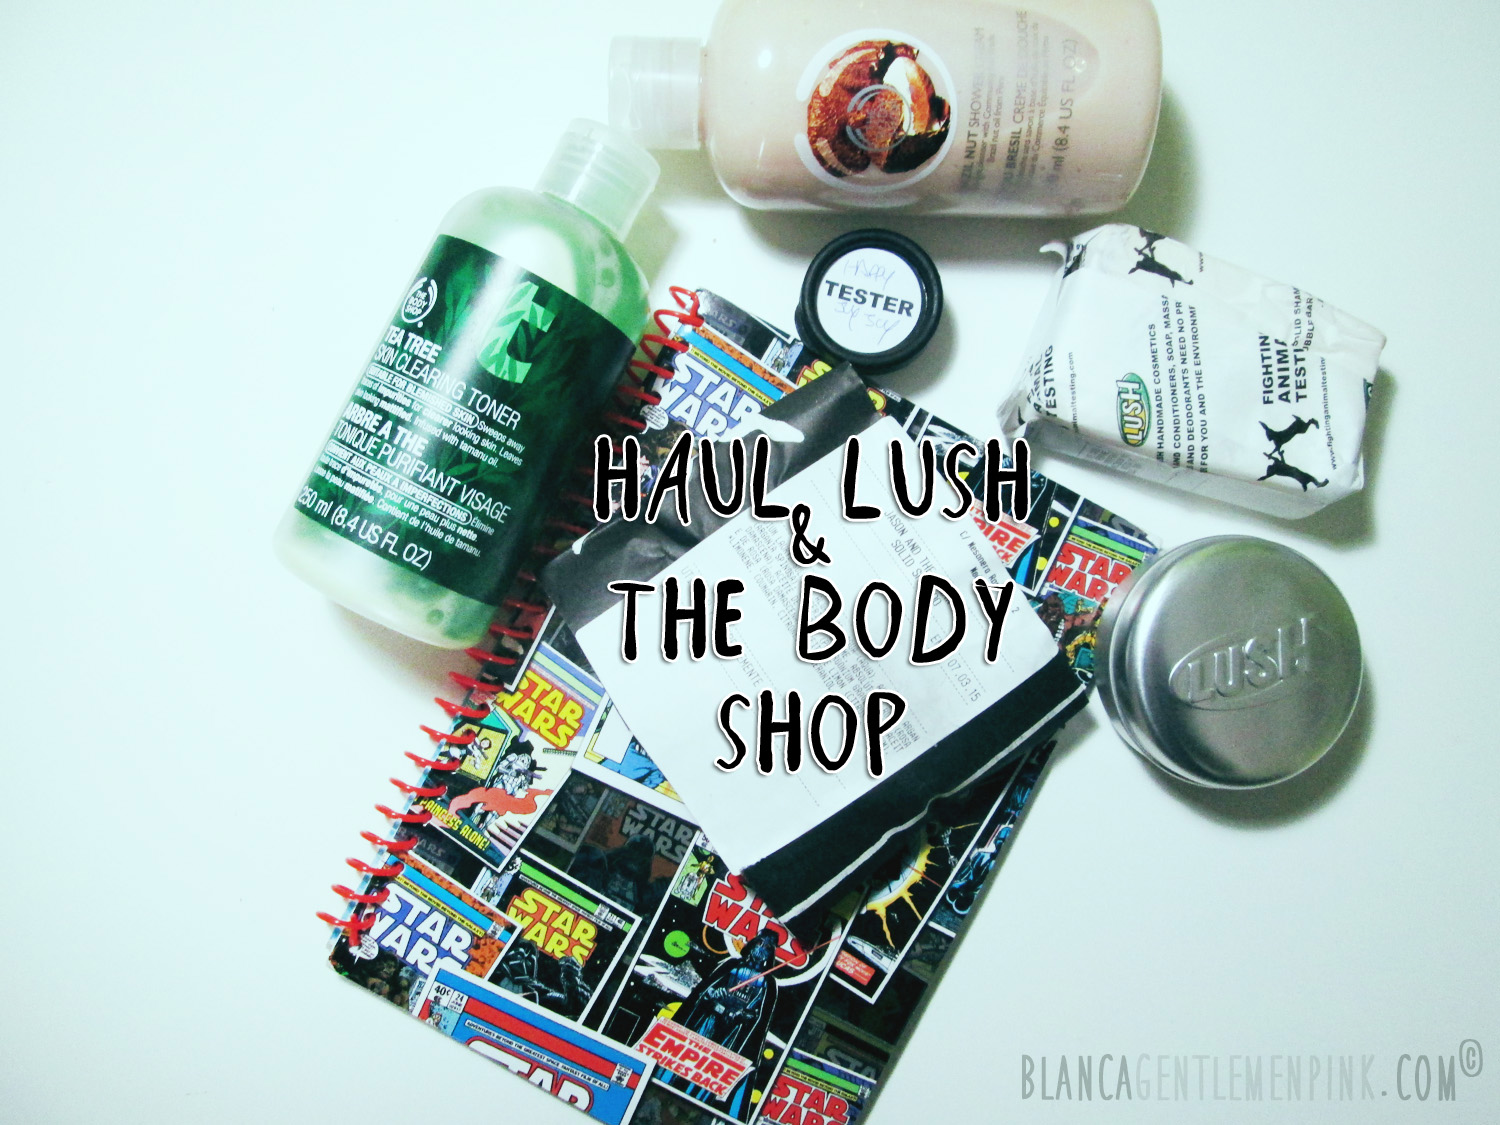 Compras de Lush y the body shop